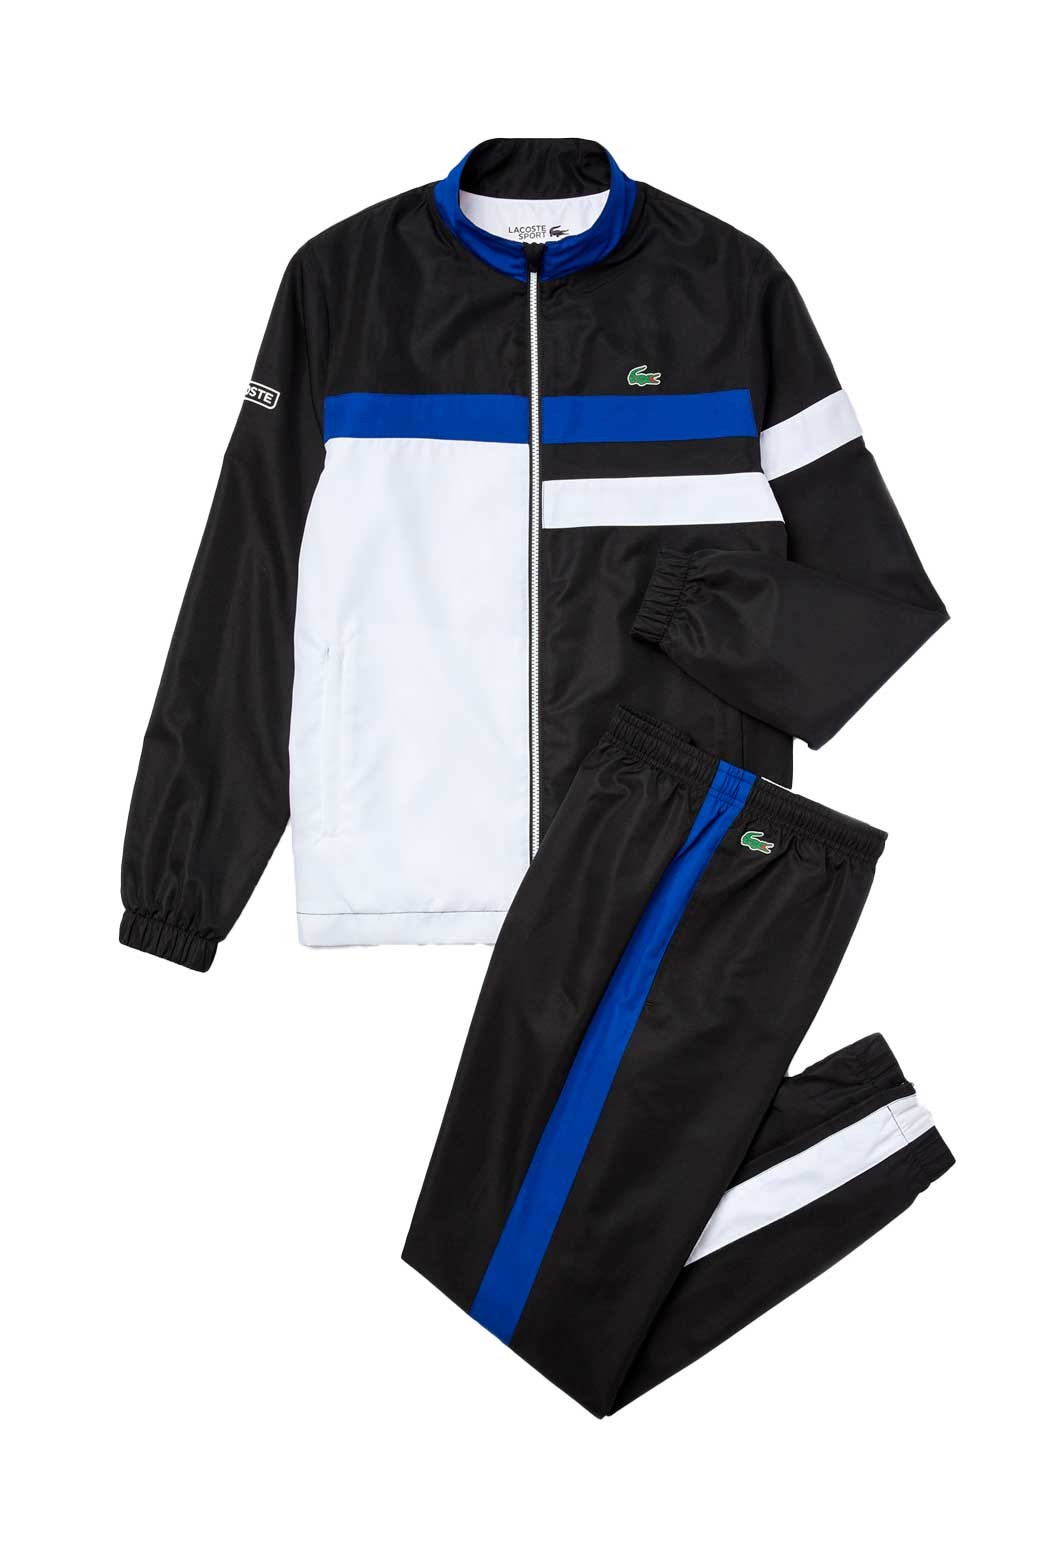 chandal lacoste baratos